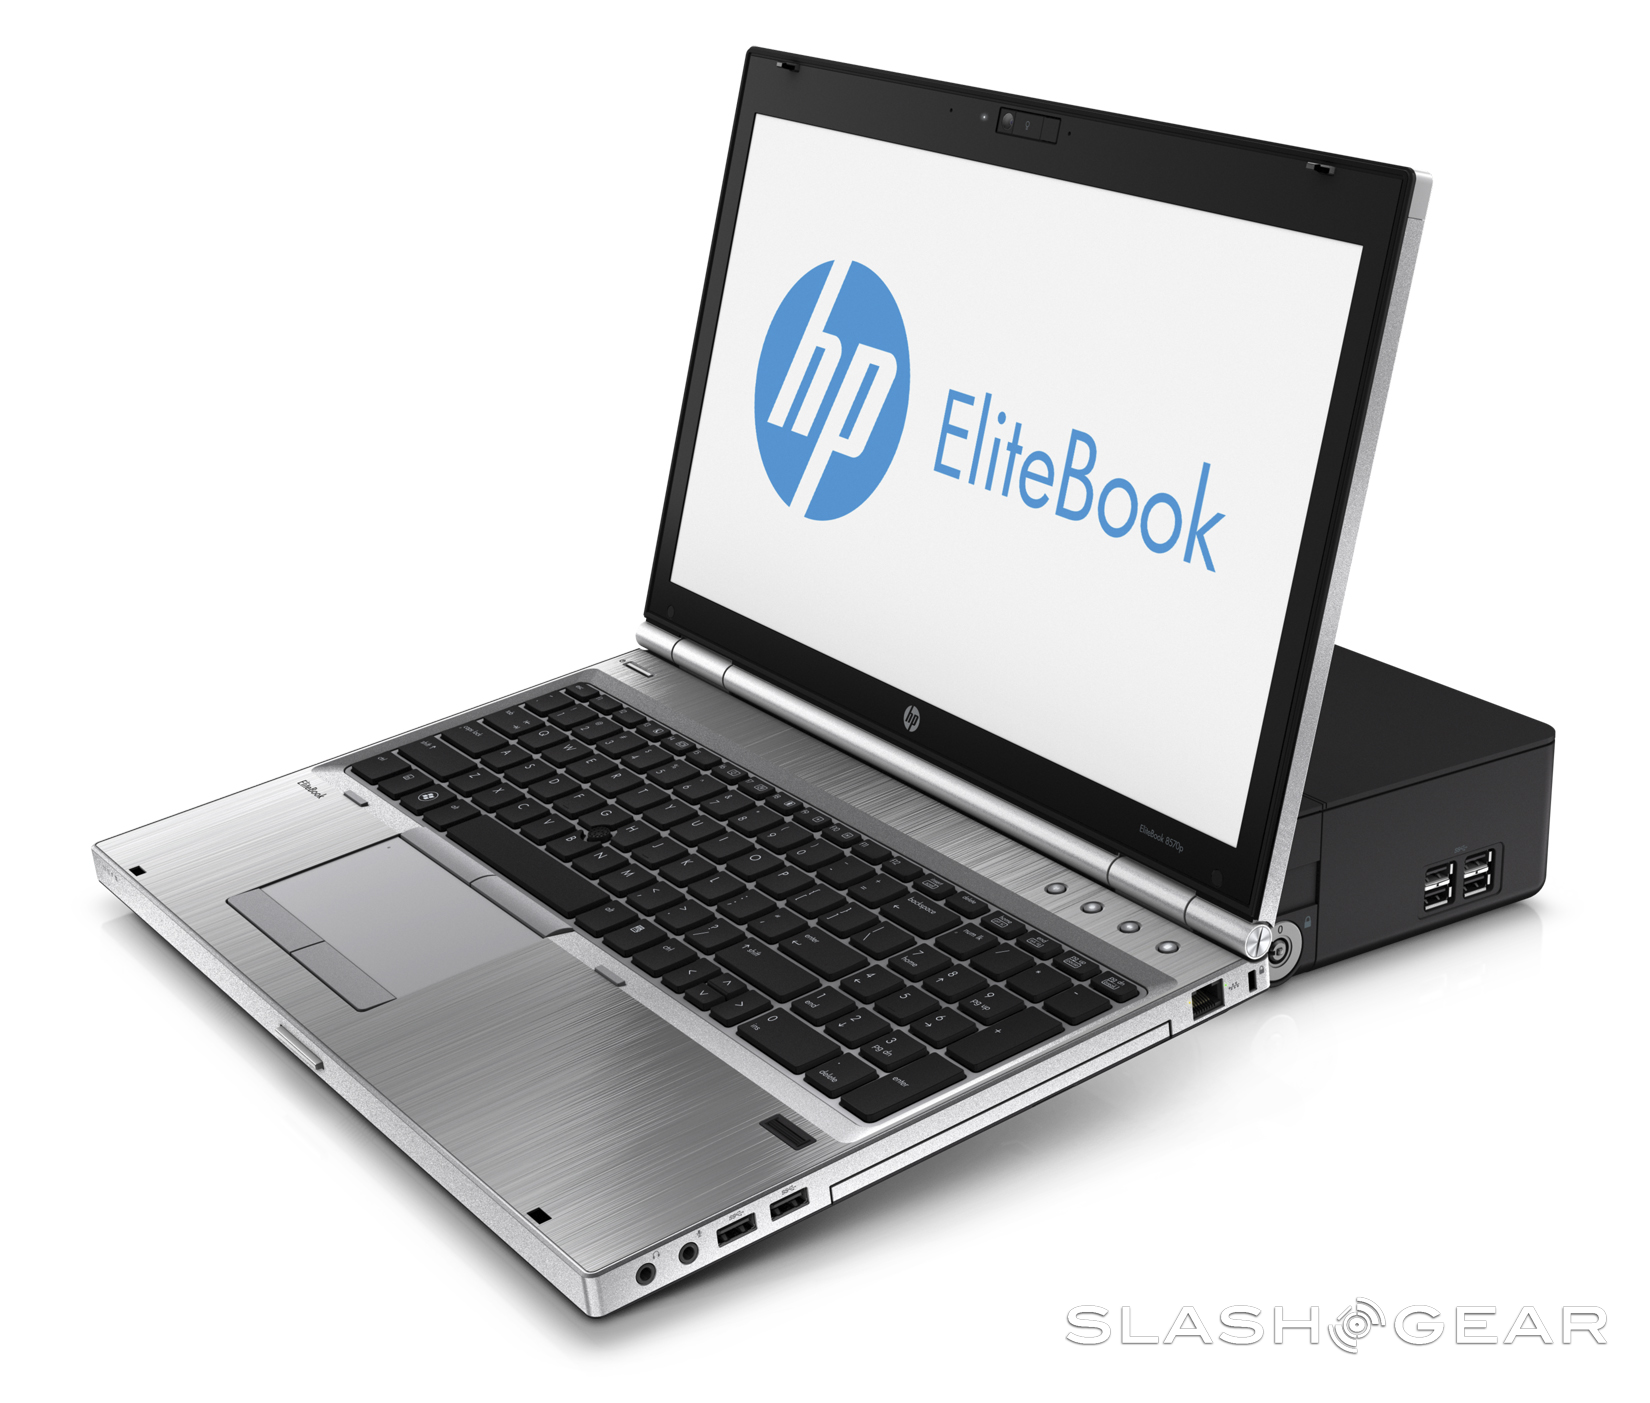 HP EliteBook 8470p and 8570p revealed - SlashGear